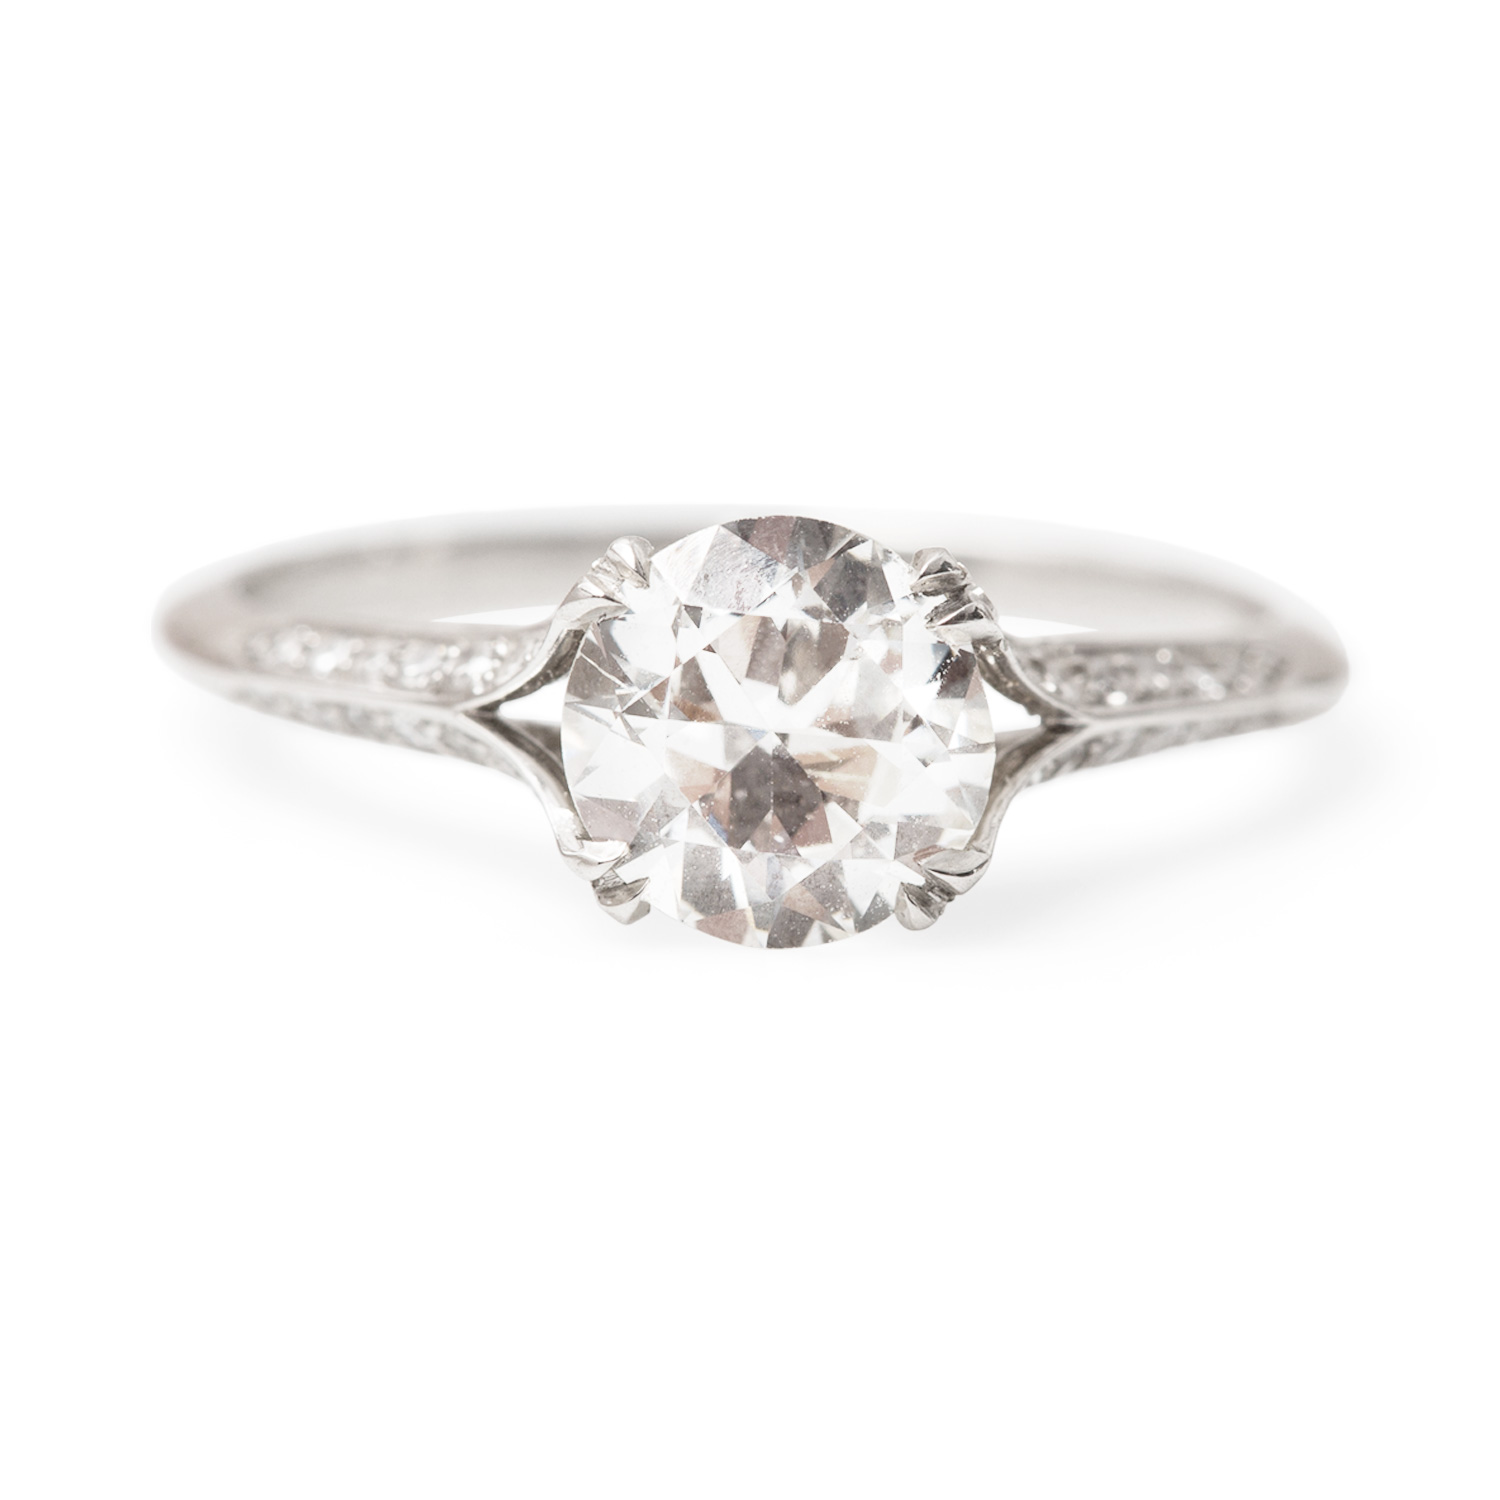 ut ceremony wedding don non traditional style engagement an diamond astonishing of and concept ring rings want files